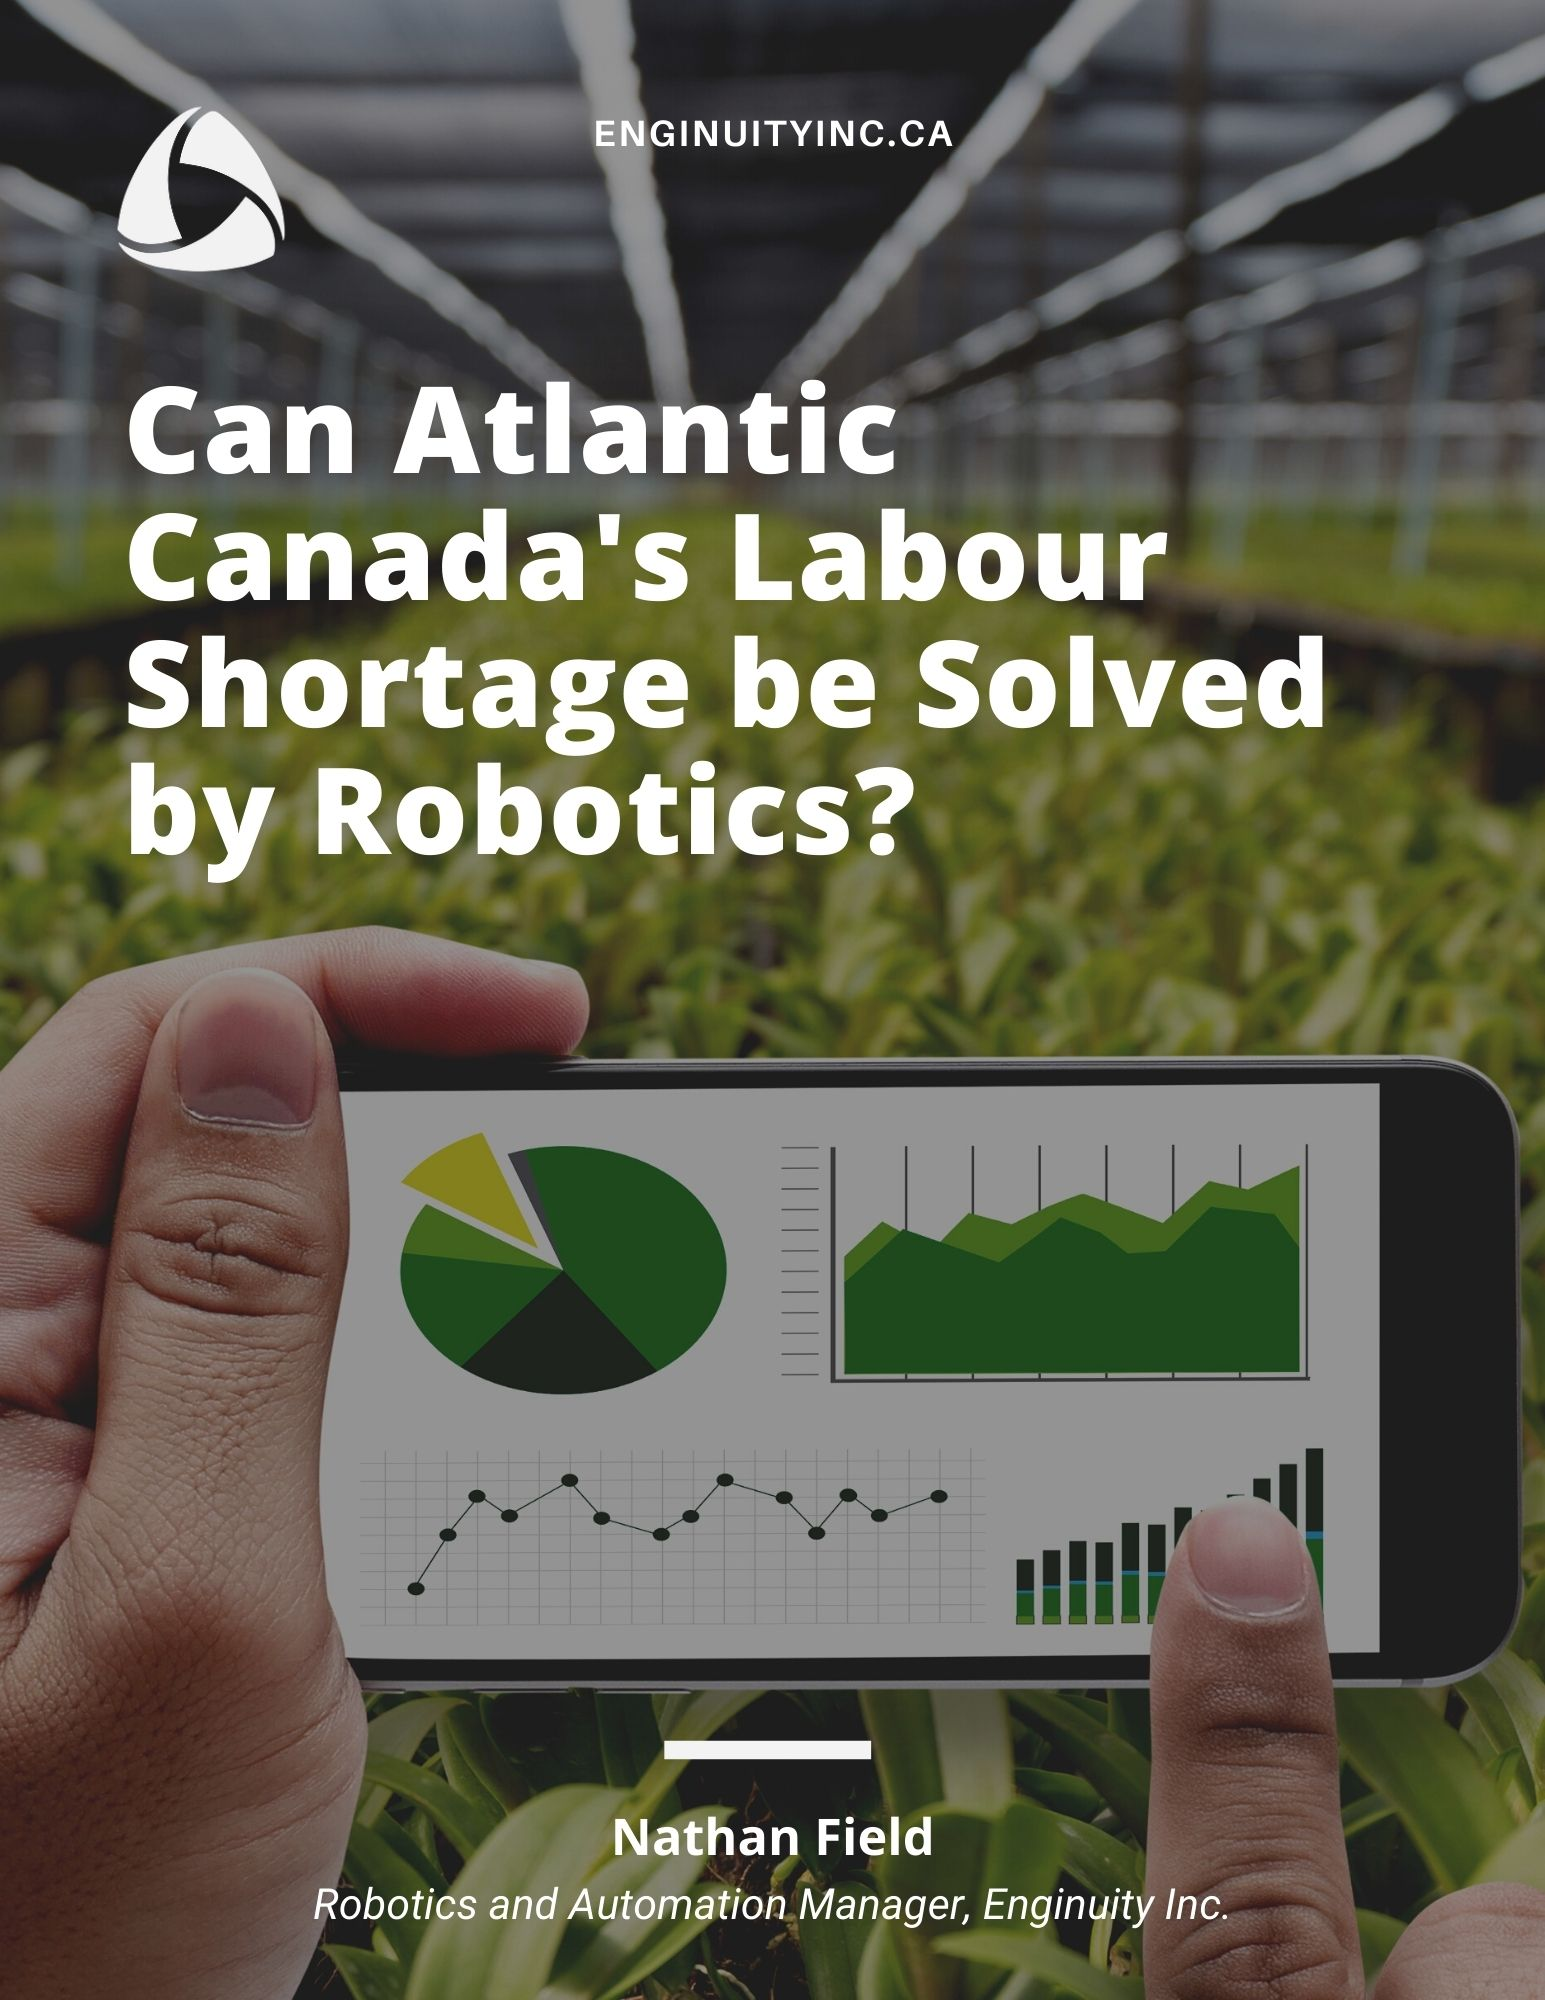 Can Atlantic Canada's Labour Shortage be Solved by Robotics?